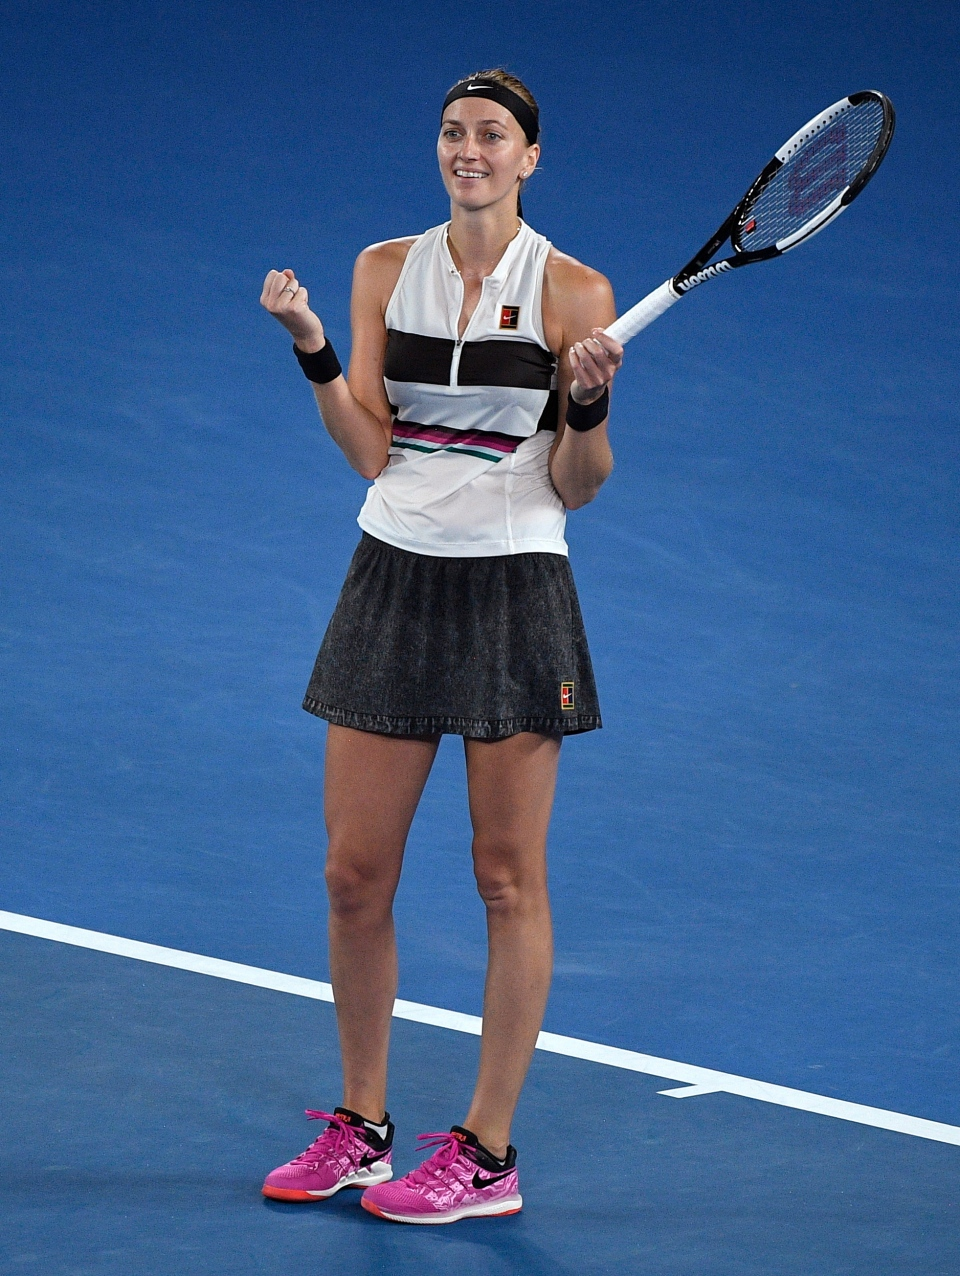 Petra Kvitova of the Czech Republic celebrates after defeating United States' Danielle Collins in their semifinal at the Australian Open tennis championships in Melbourne, Australia, Thursday, Jan. 24, 2019. (AP Photo/Andy Brownbill)